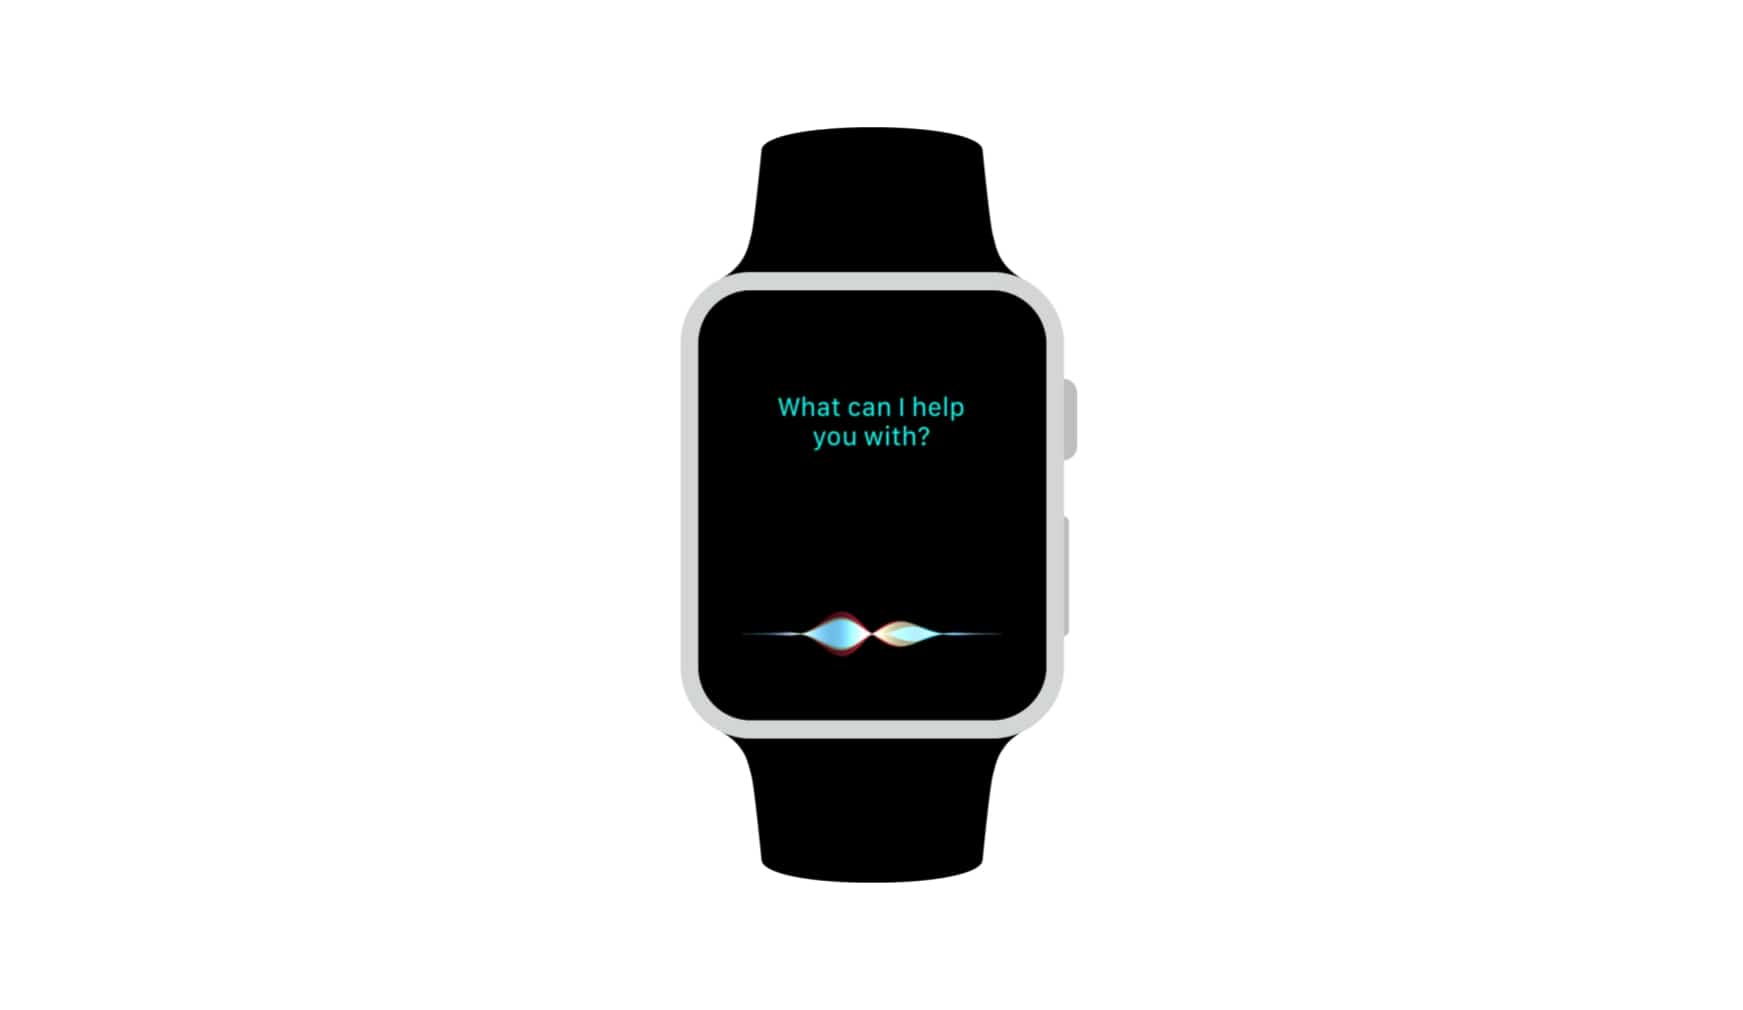 watchOS 4 siri improvements